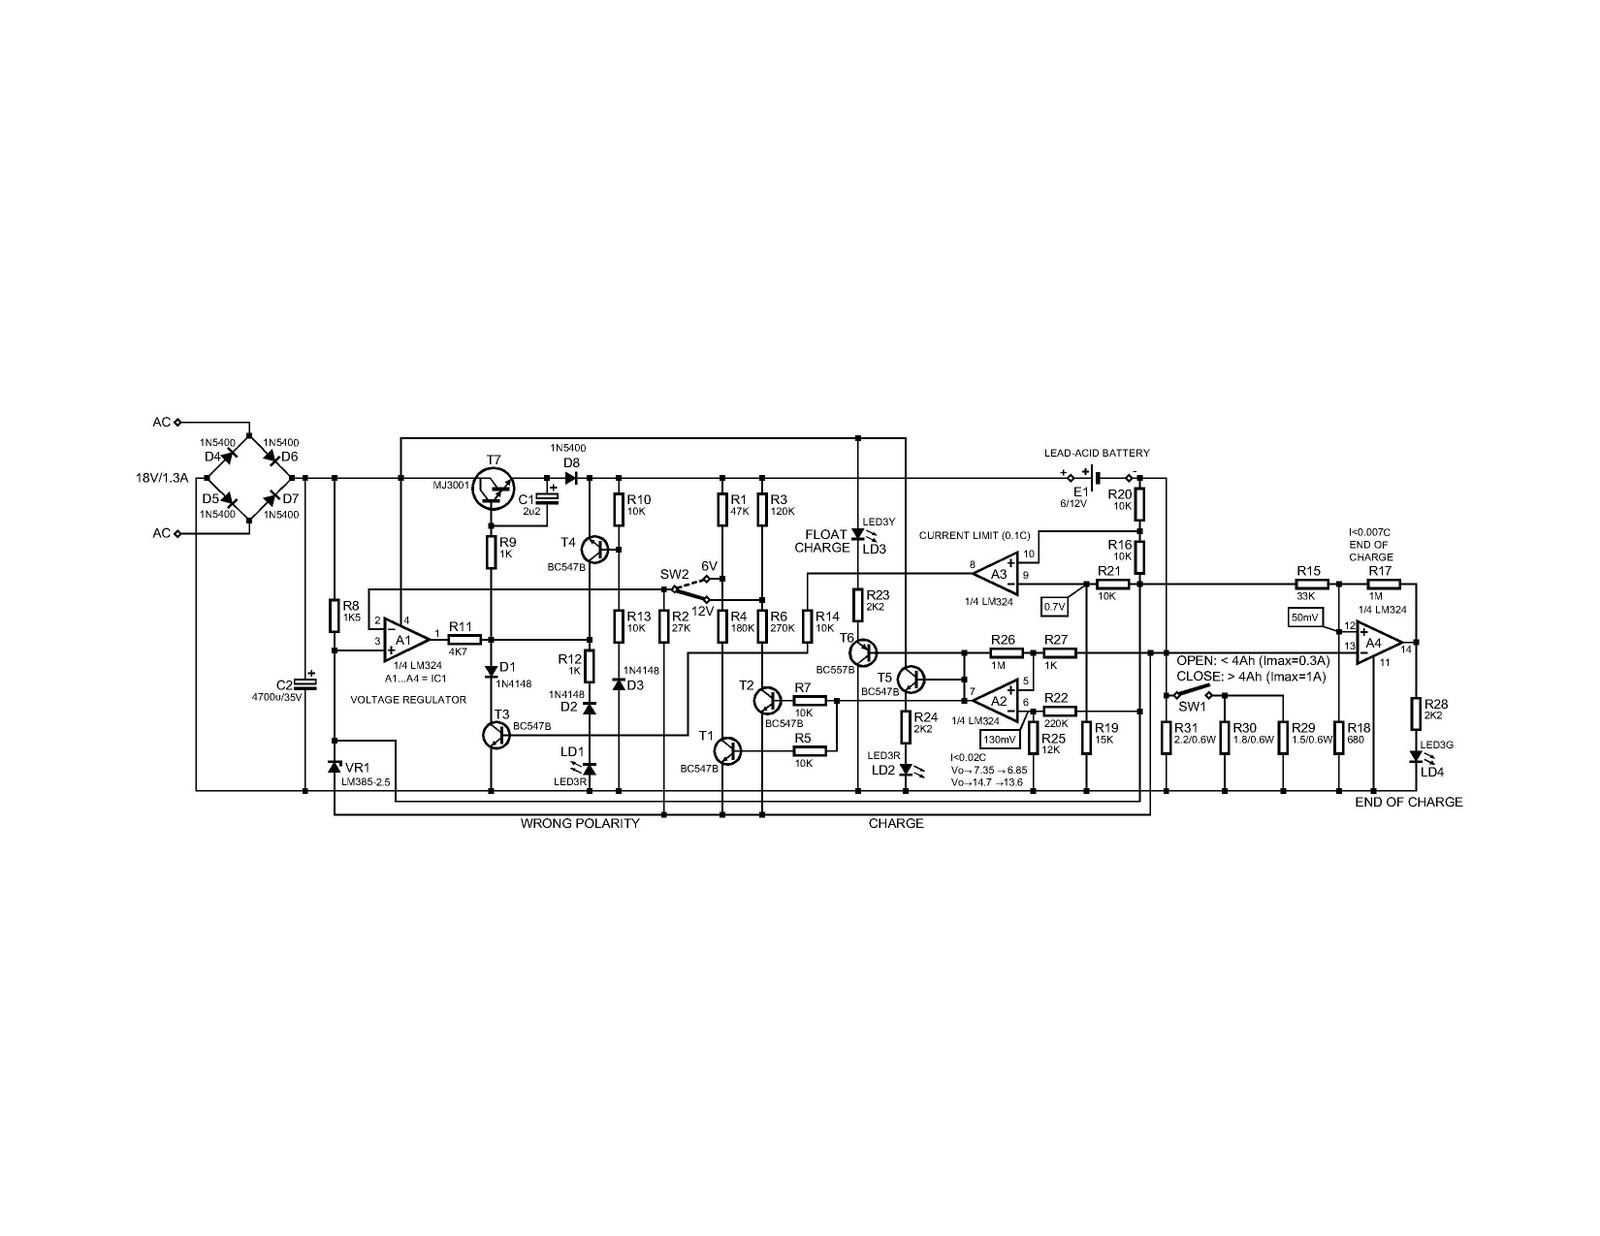 48 volt charger circuit schematic diagram